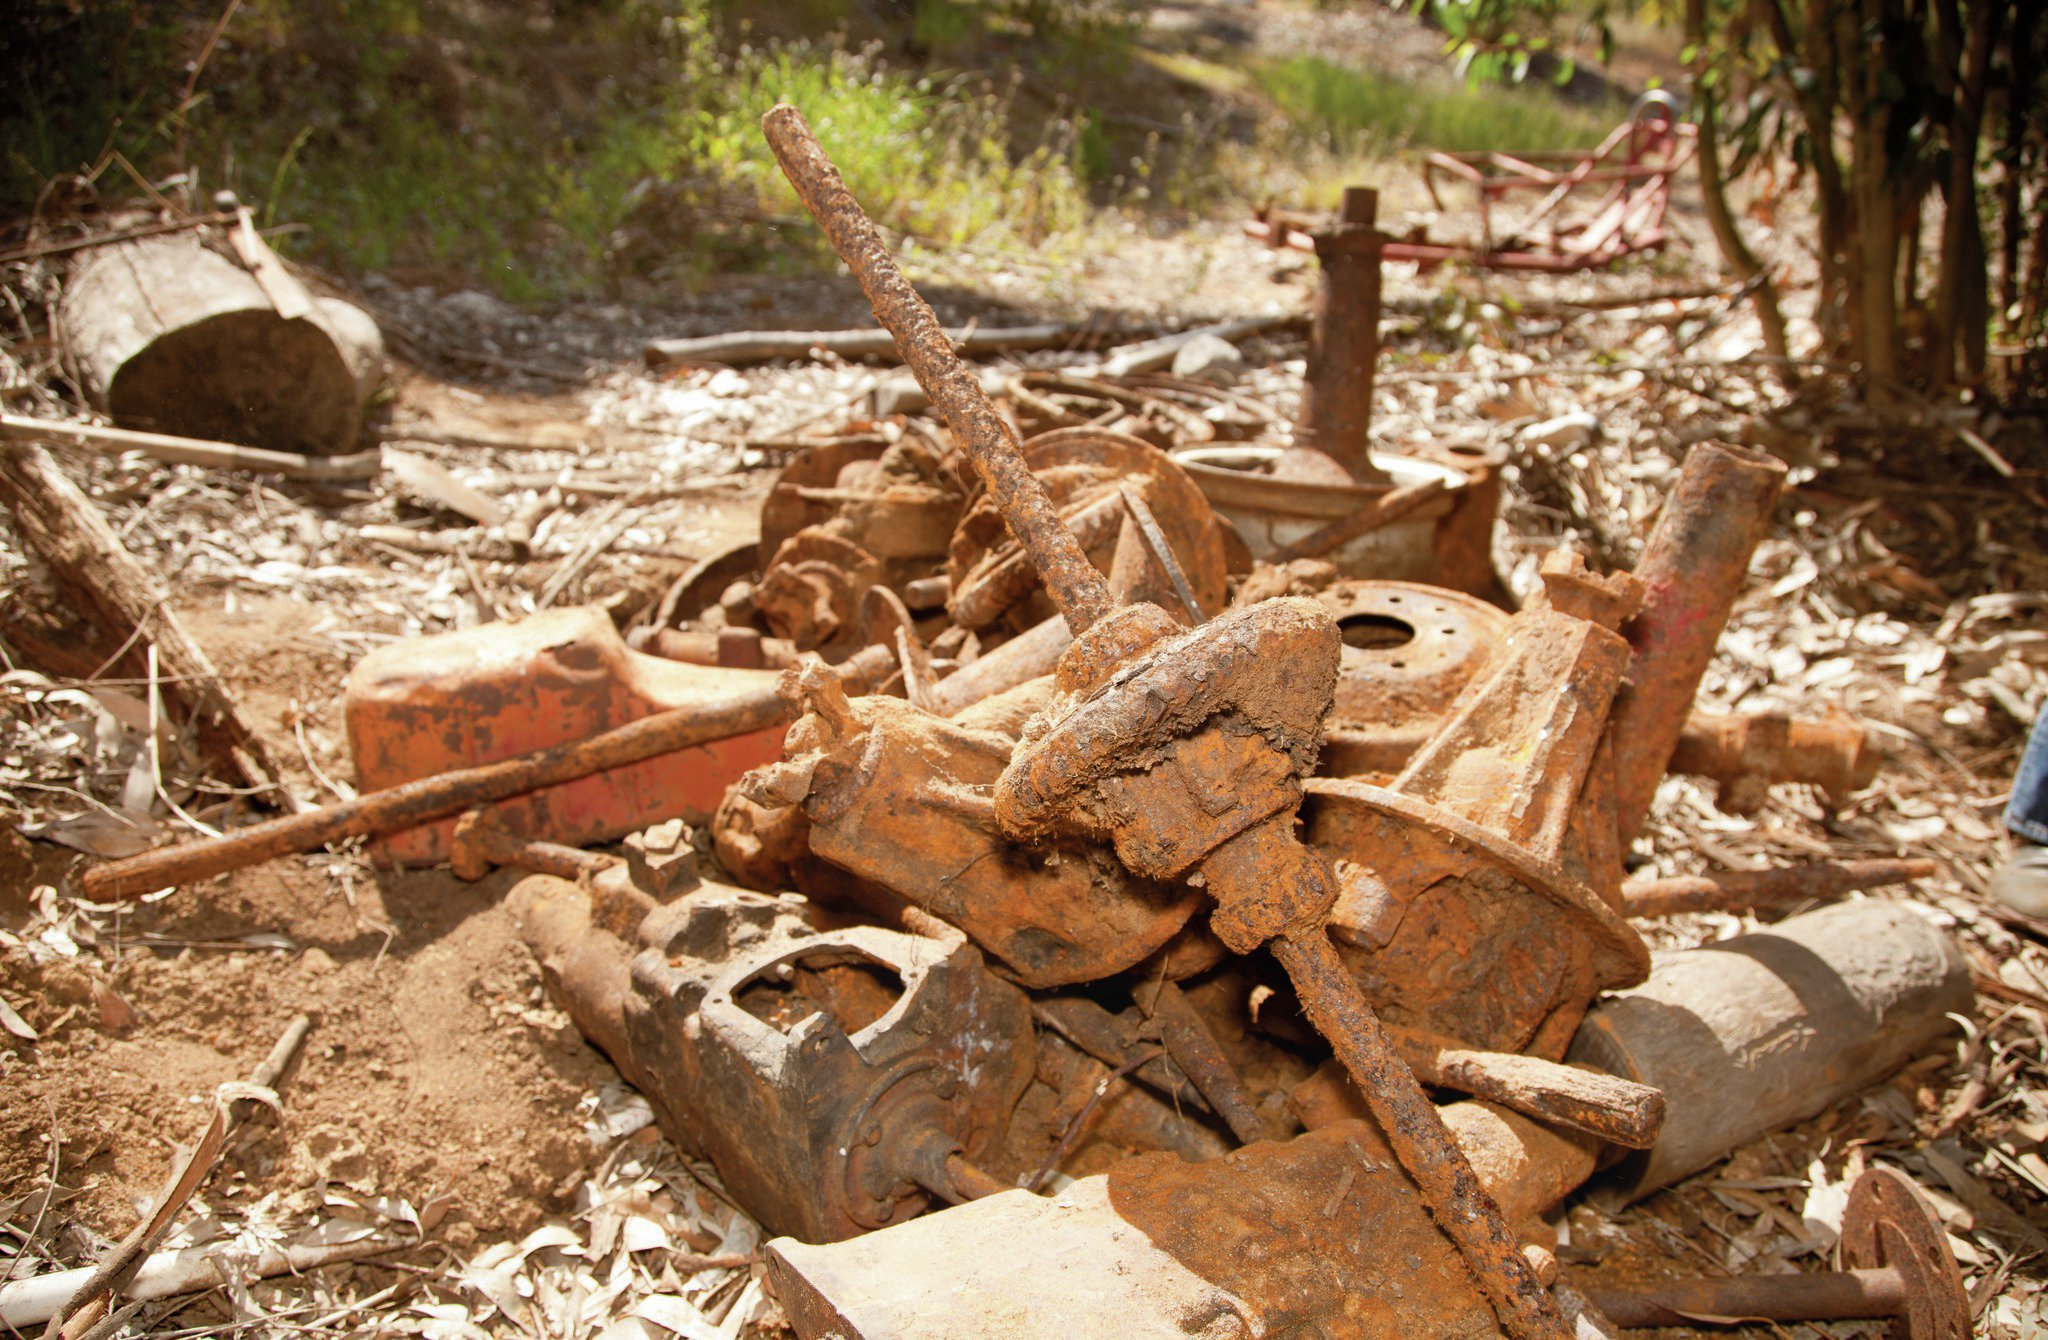 The remains of the altered were found at Nolan White's home a couple of years ago. These chassis and driveline pieces were kept outside, while the engine and its components were a little more carefully stored in the garage. Remarkably, many of these pieces were able to be refurbished and reused on the car.